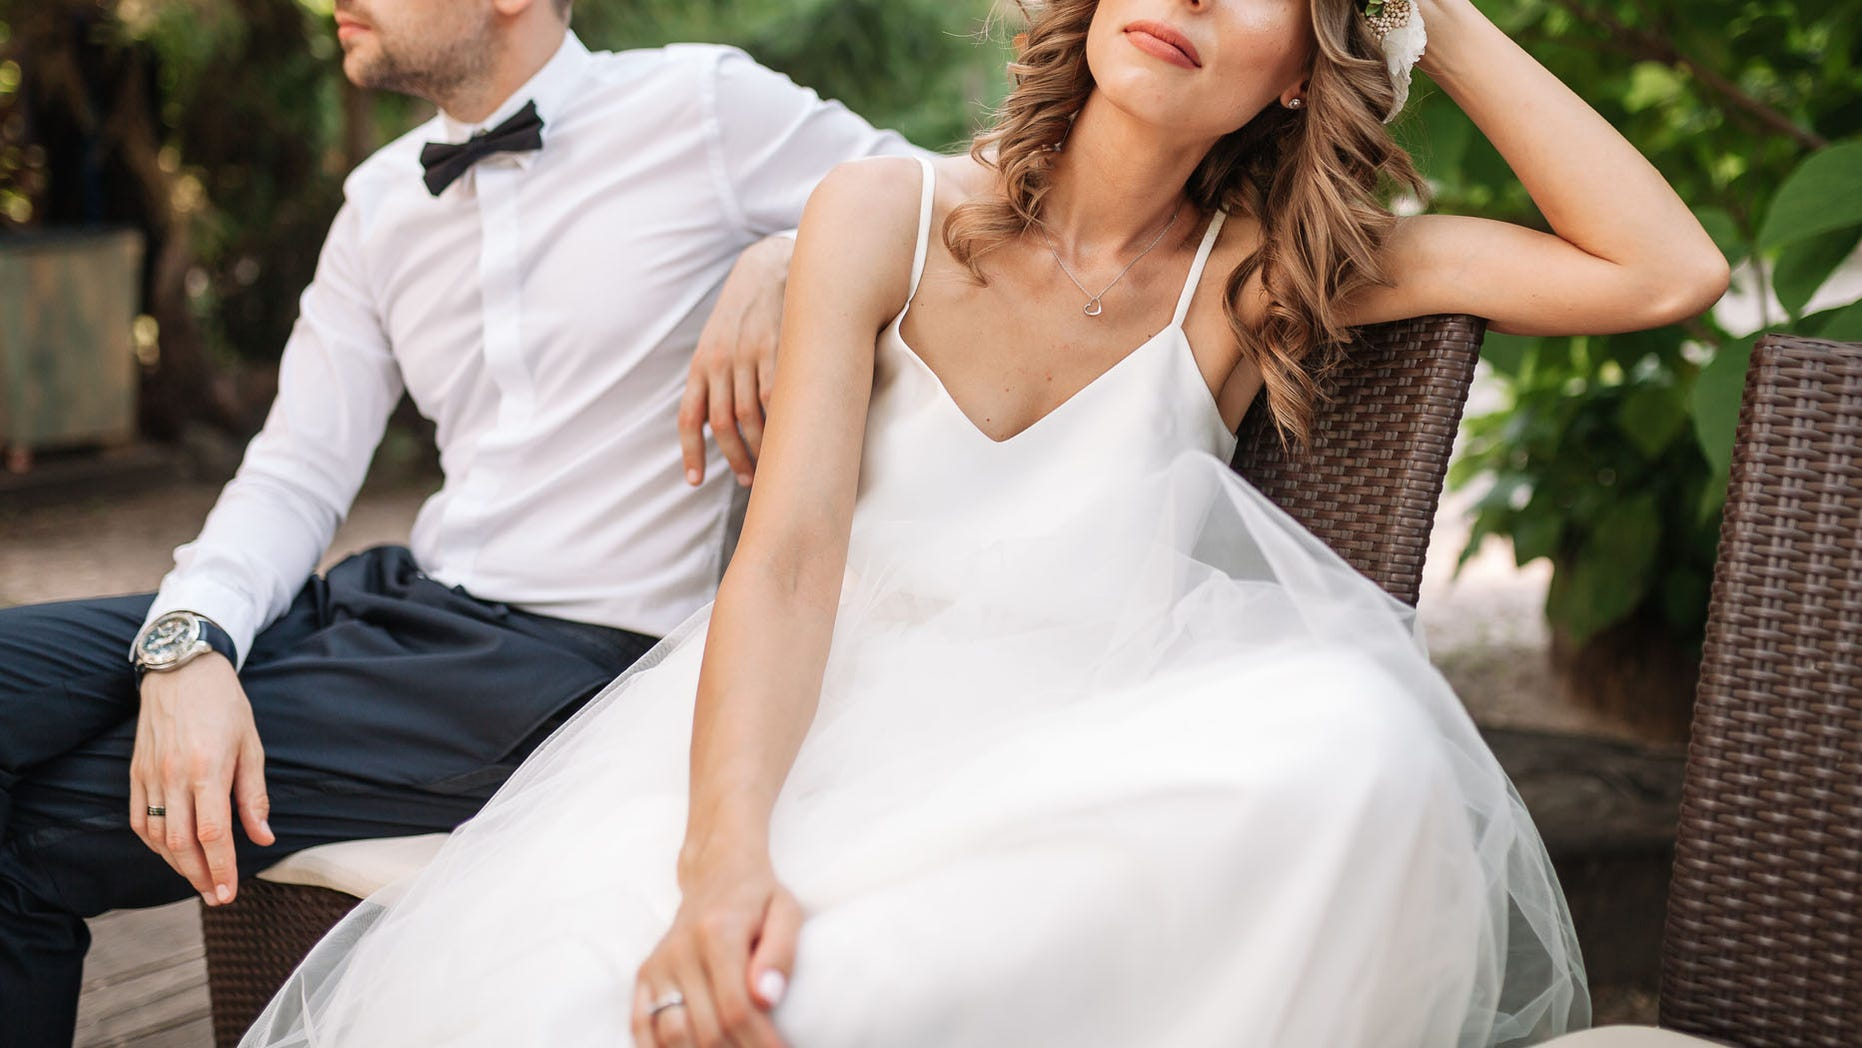 Westlake Legal Group angry-wedding-couple 7 of the most misbehaved wedding parties of 2019 fox-news/special/2019-year-in-review fox-news/lifestyle/weddings fox news fnc/lifestyle fnc dd4bb4c8-7a30-5b20-b906-1256ec6a0f4f article Alexandra Deabler